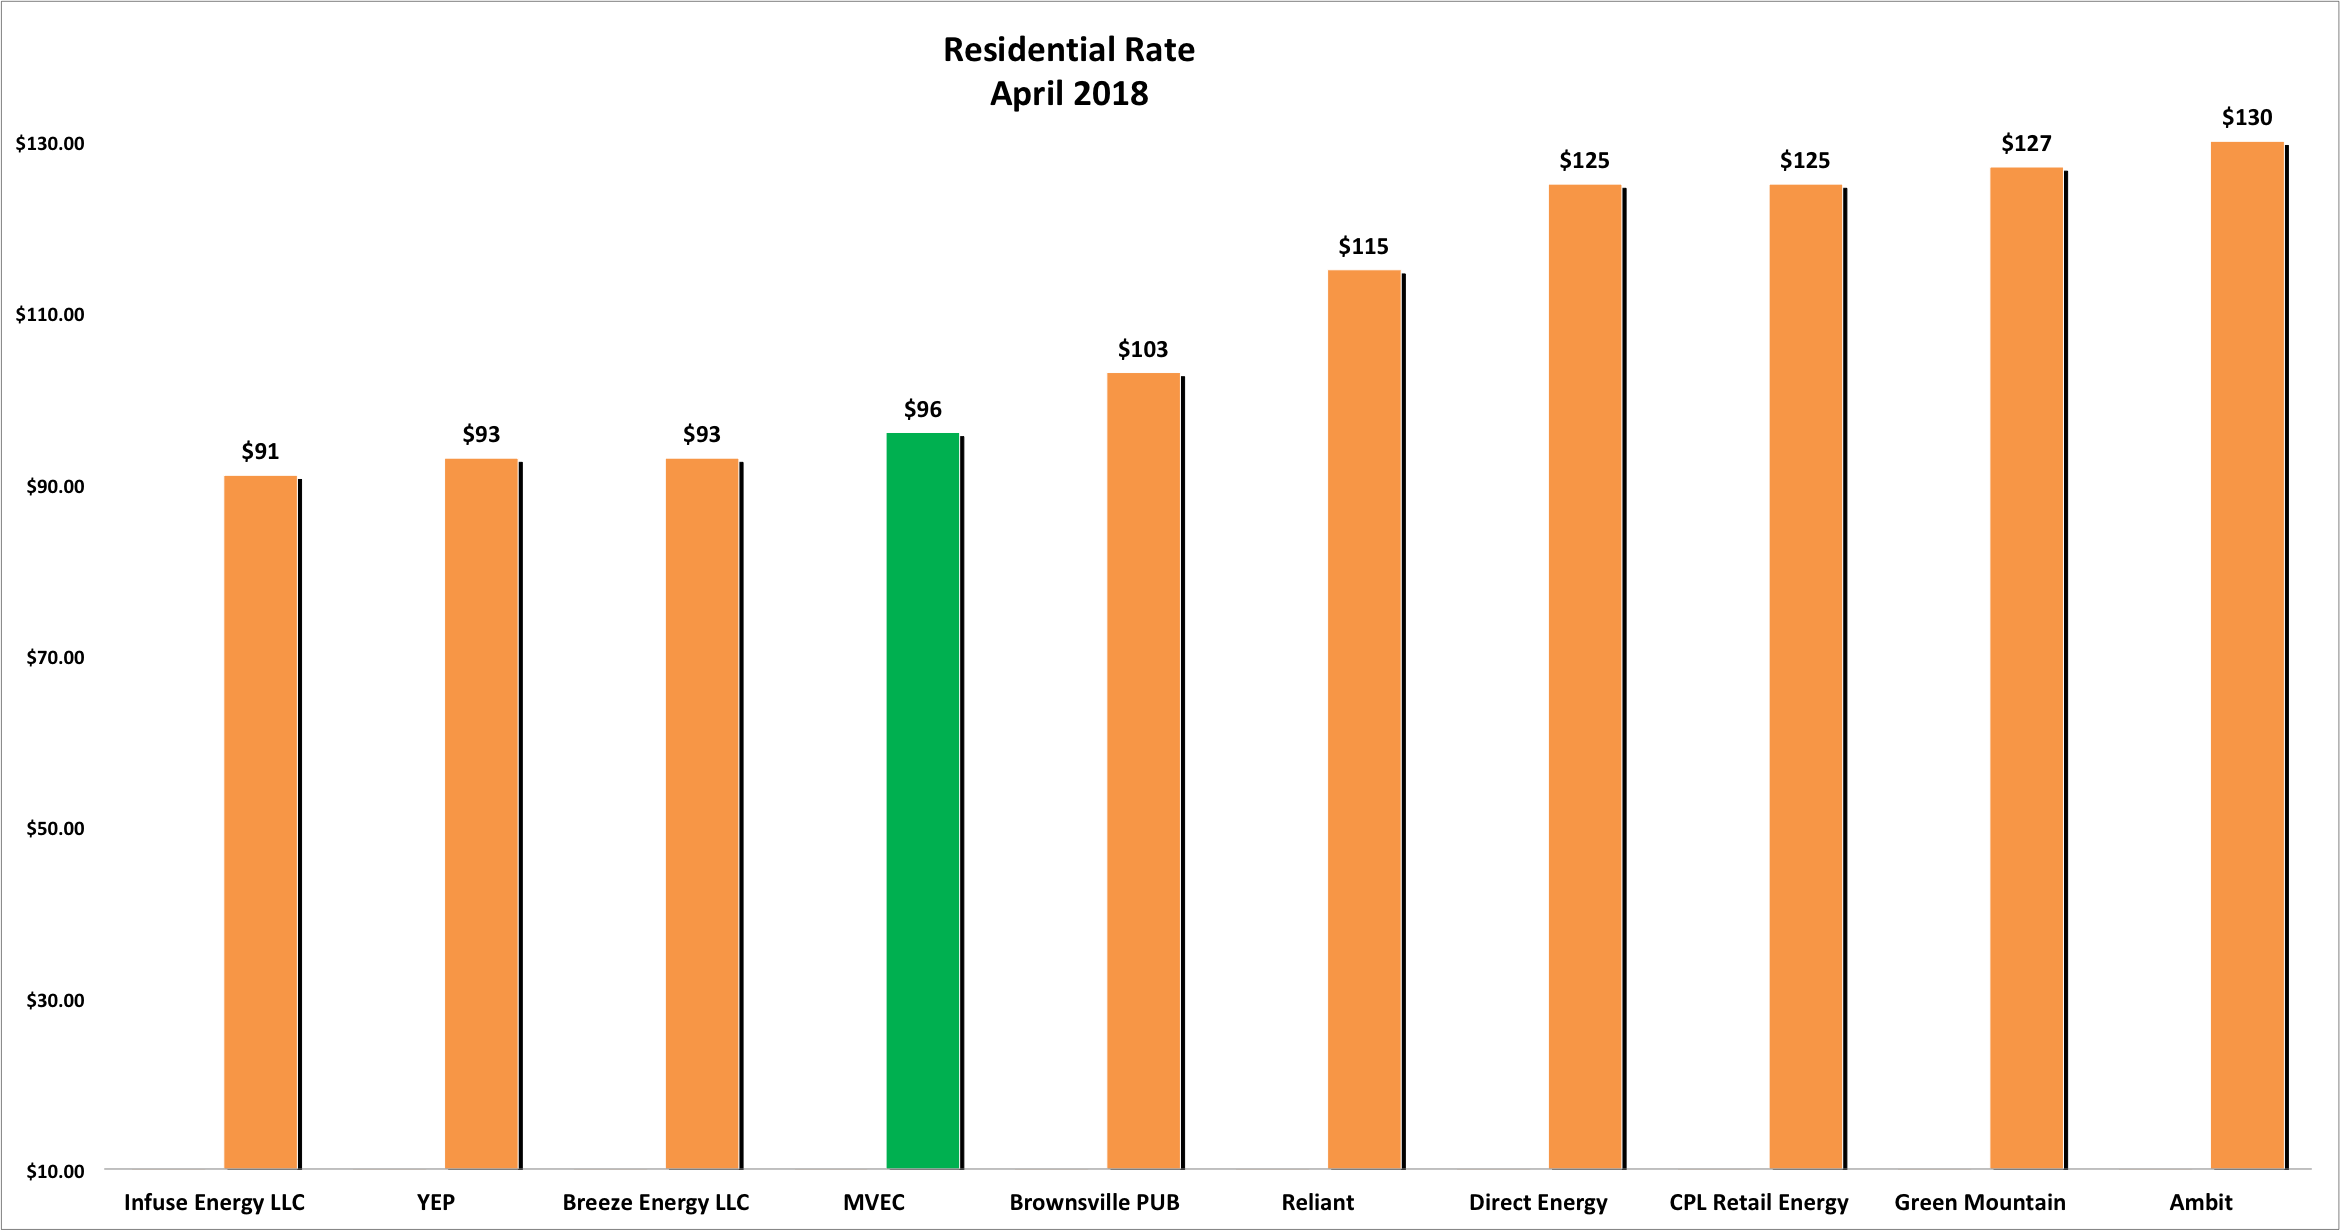 Bar graph showing Residential Rates for April 2018